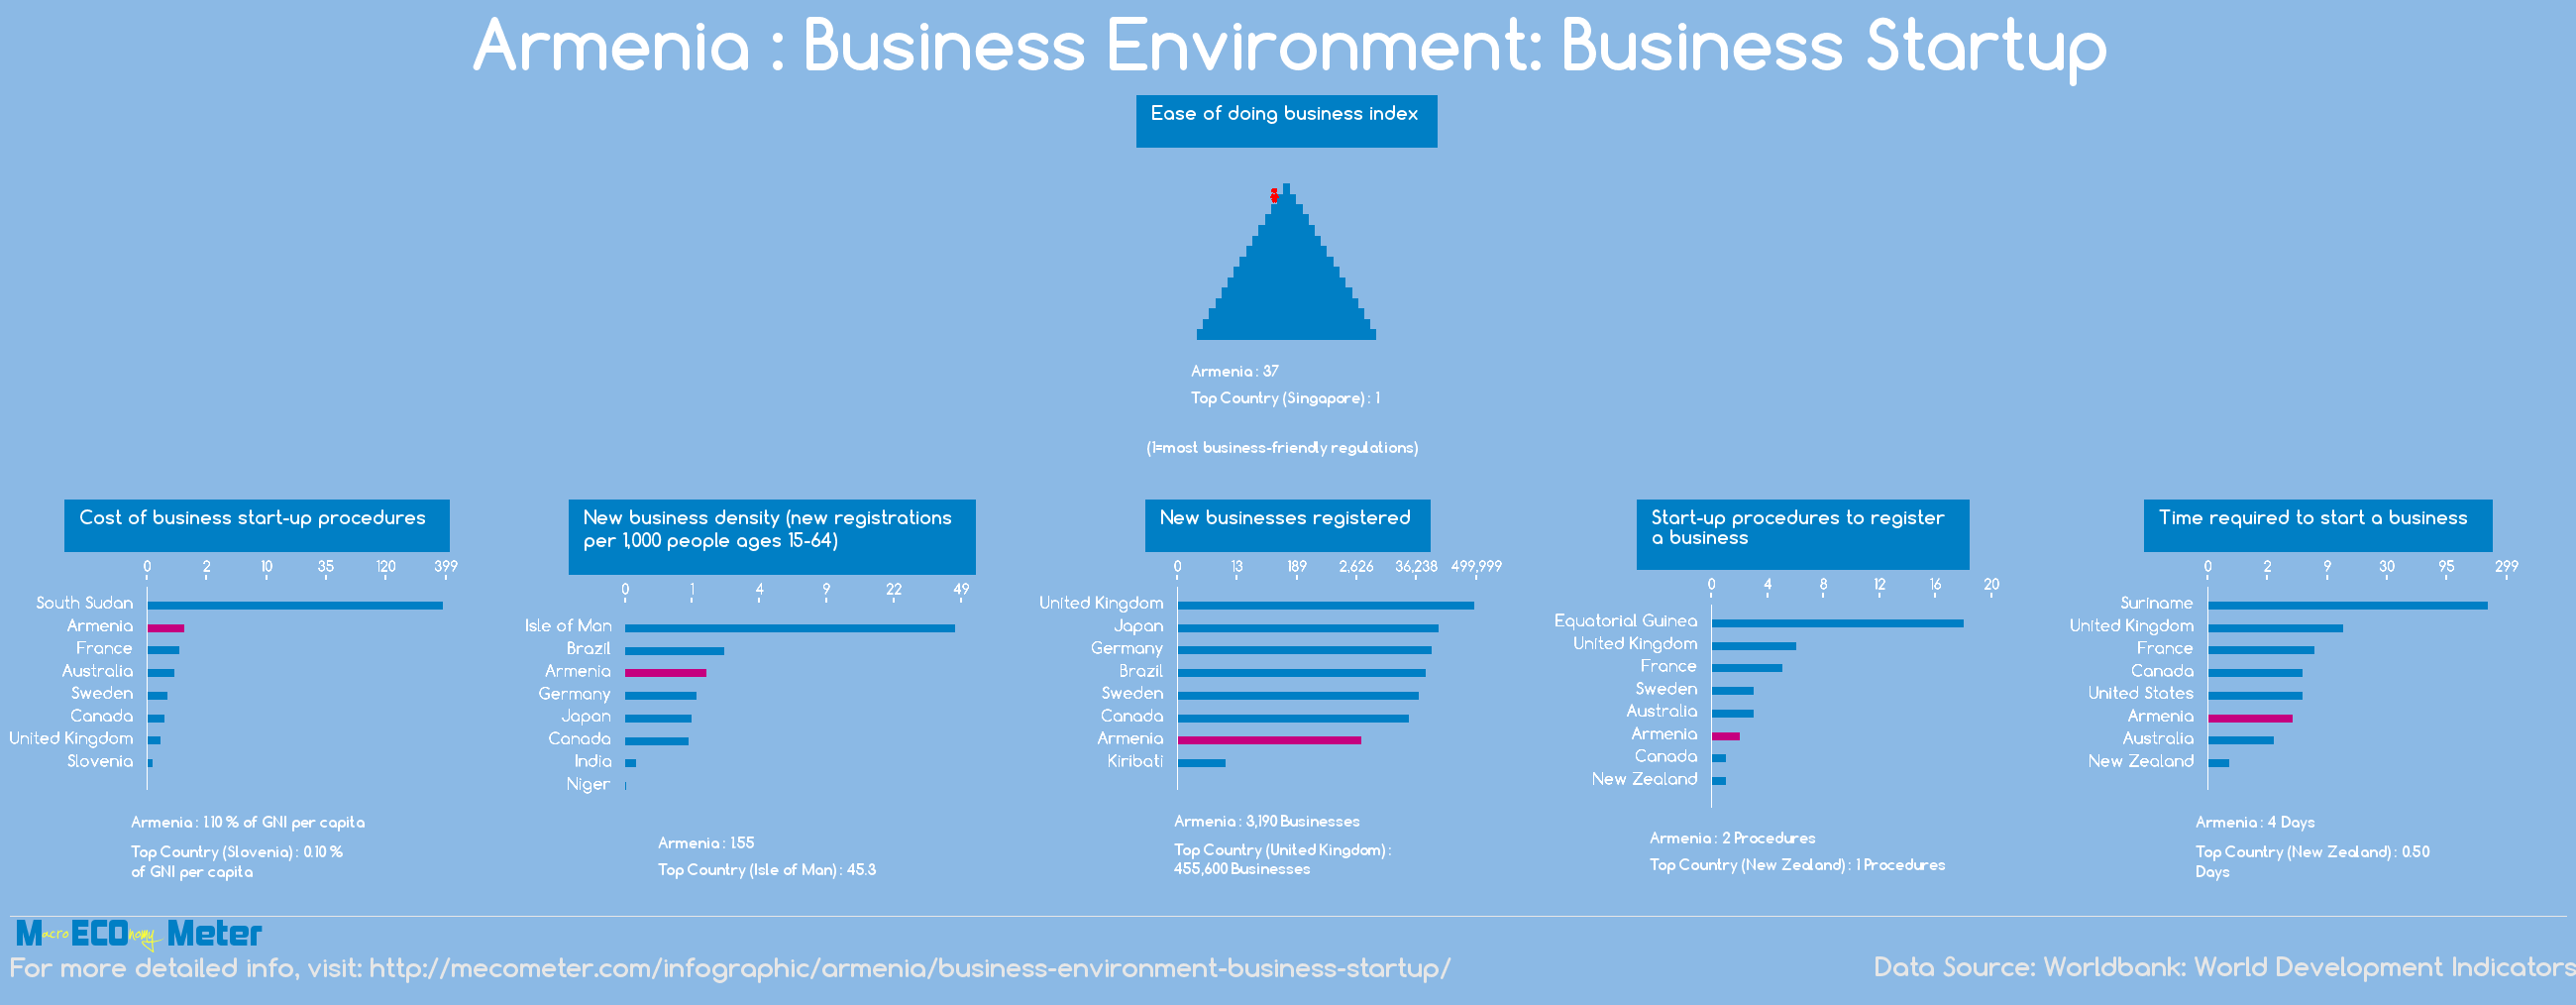 Armenia : Business Environment: Business Startup